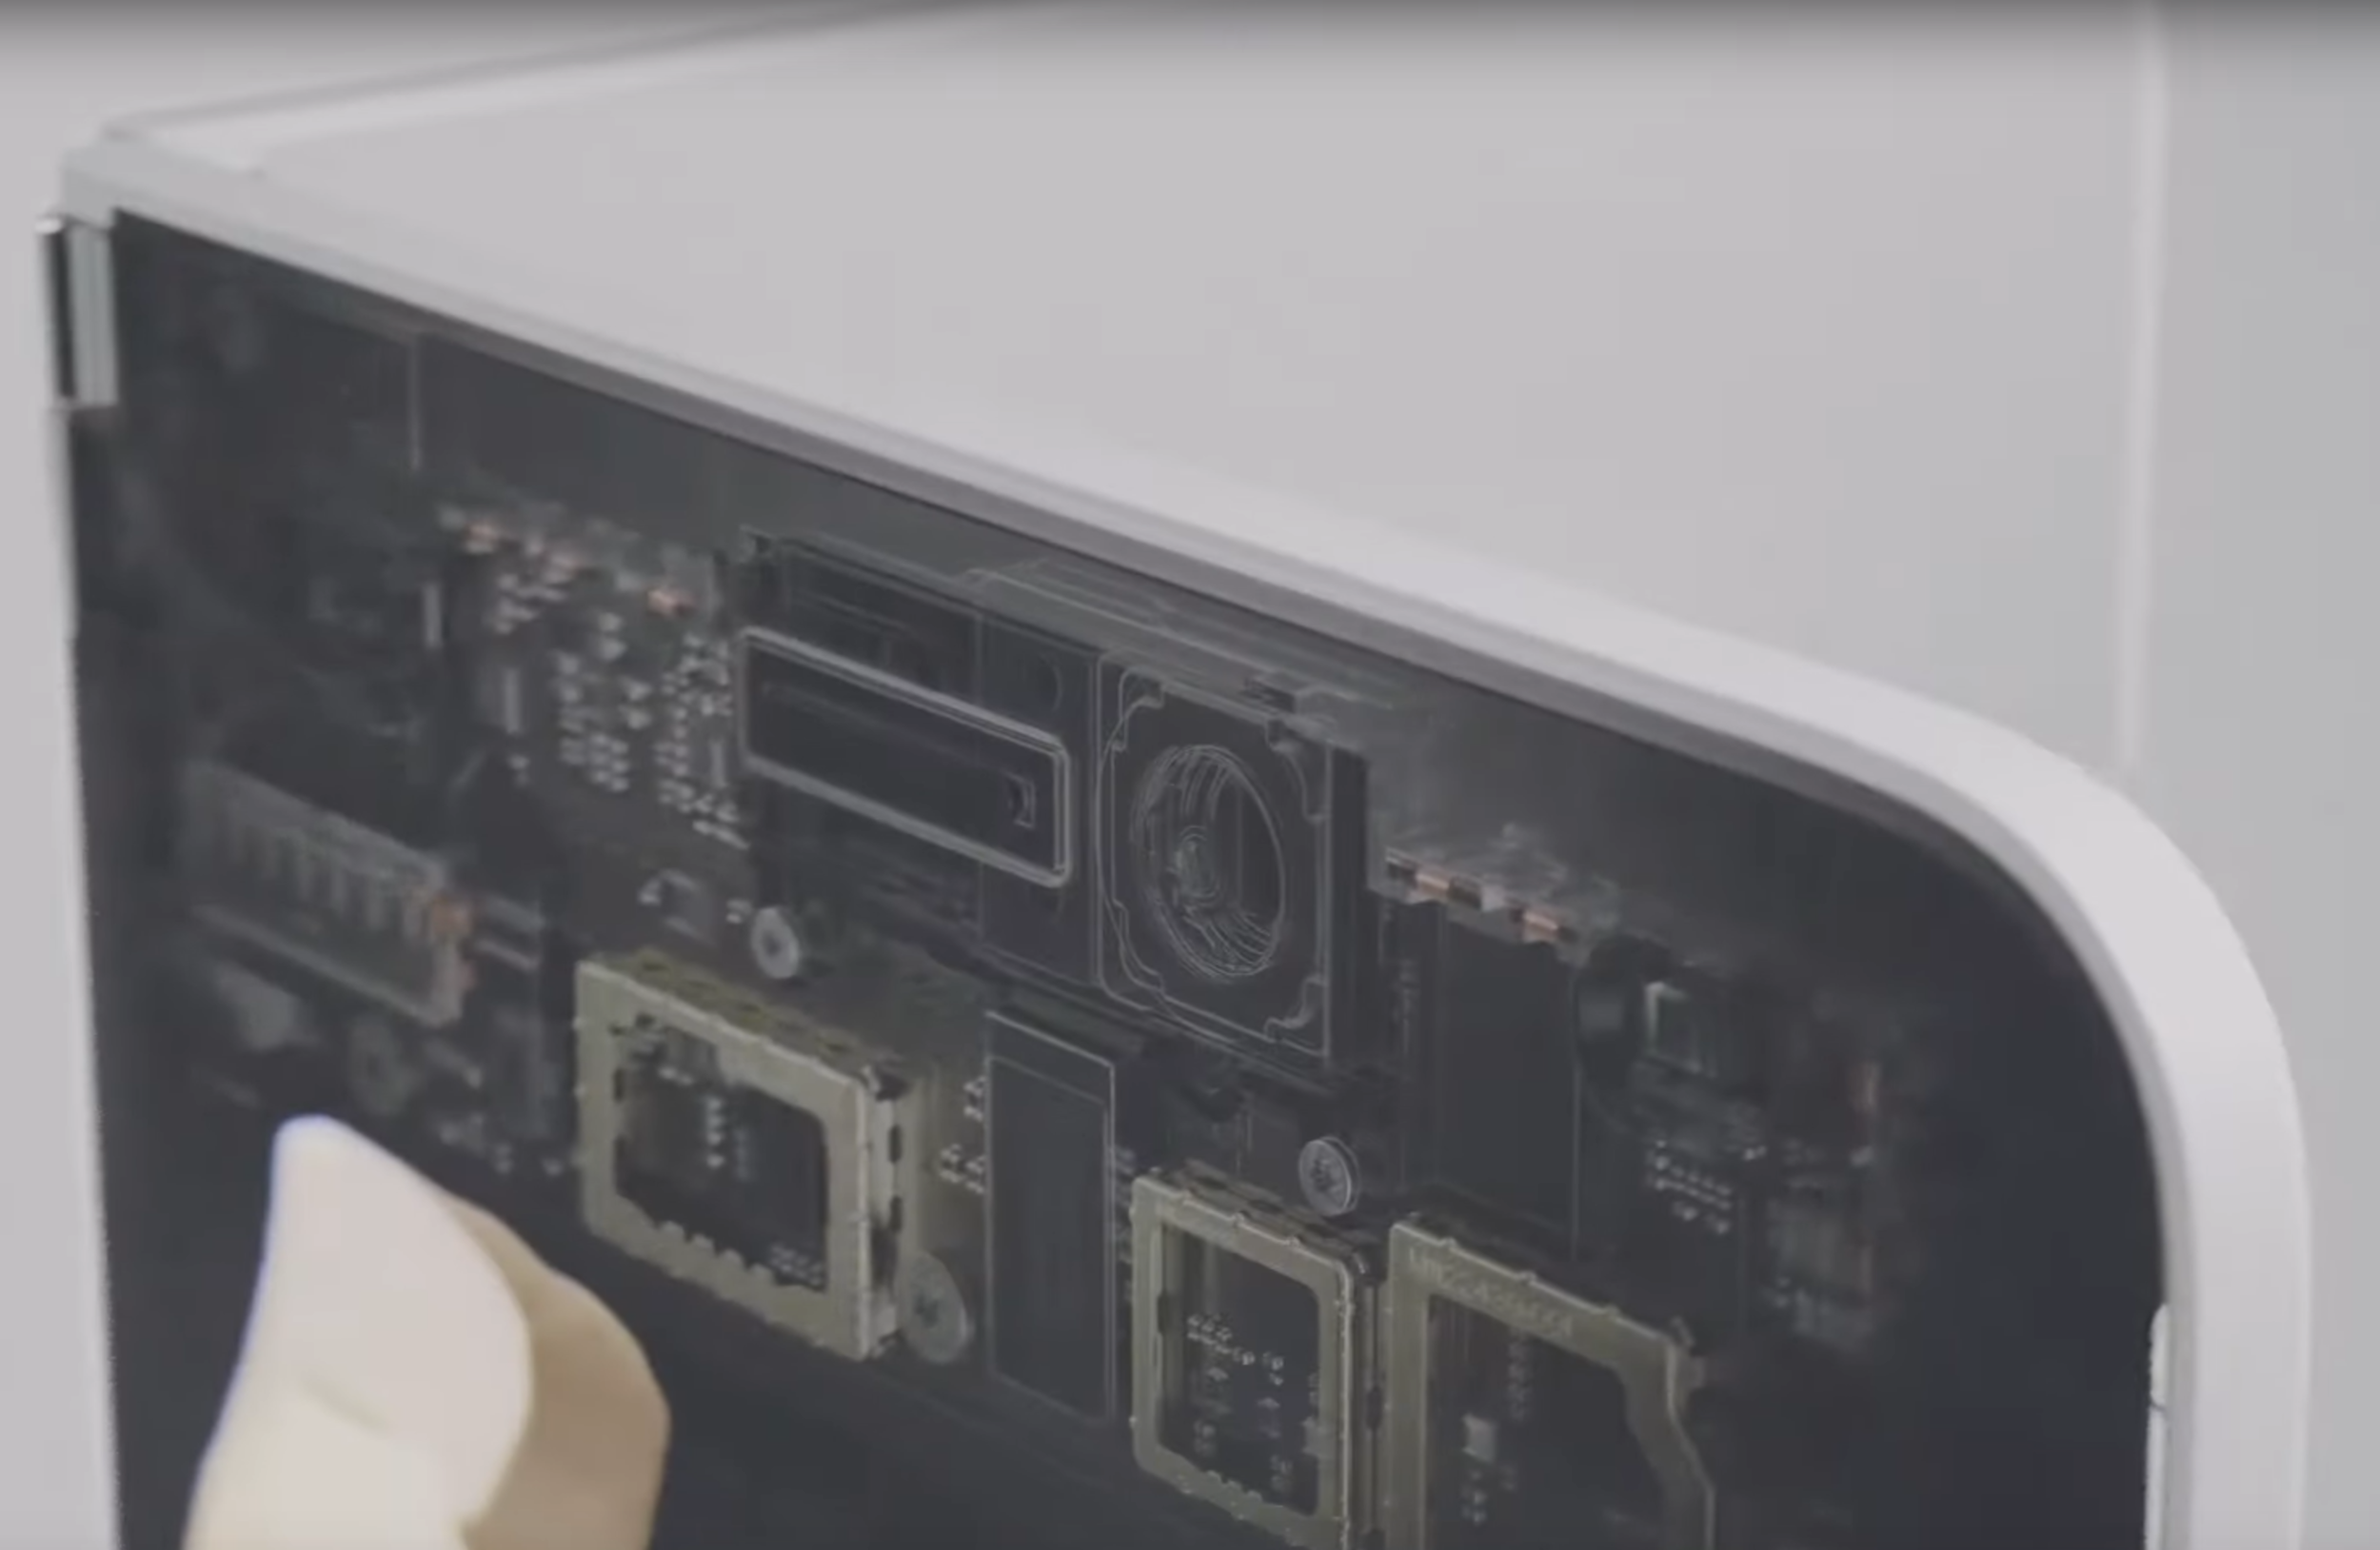 The sole visible camera on the Surface Neo preview video, with a curiously large size for a selfie camera